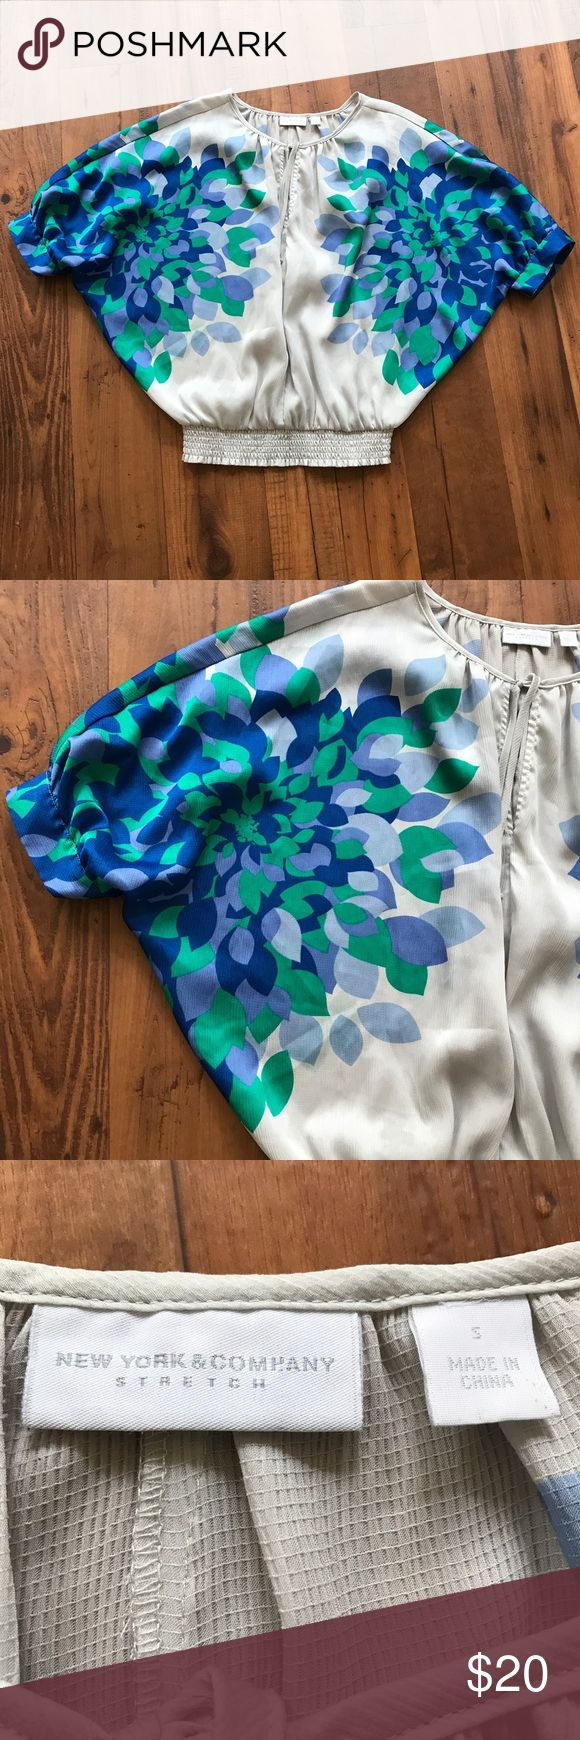 """New York & Company Batwing Dolman Floral Top New York & Company batwing dolman green and blue floral top. Cinched elastic waist. Peep hole on the front. Size small. The length of the top is about 23"""". New York & Company Tops Blouses"""